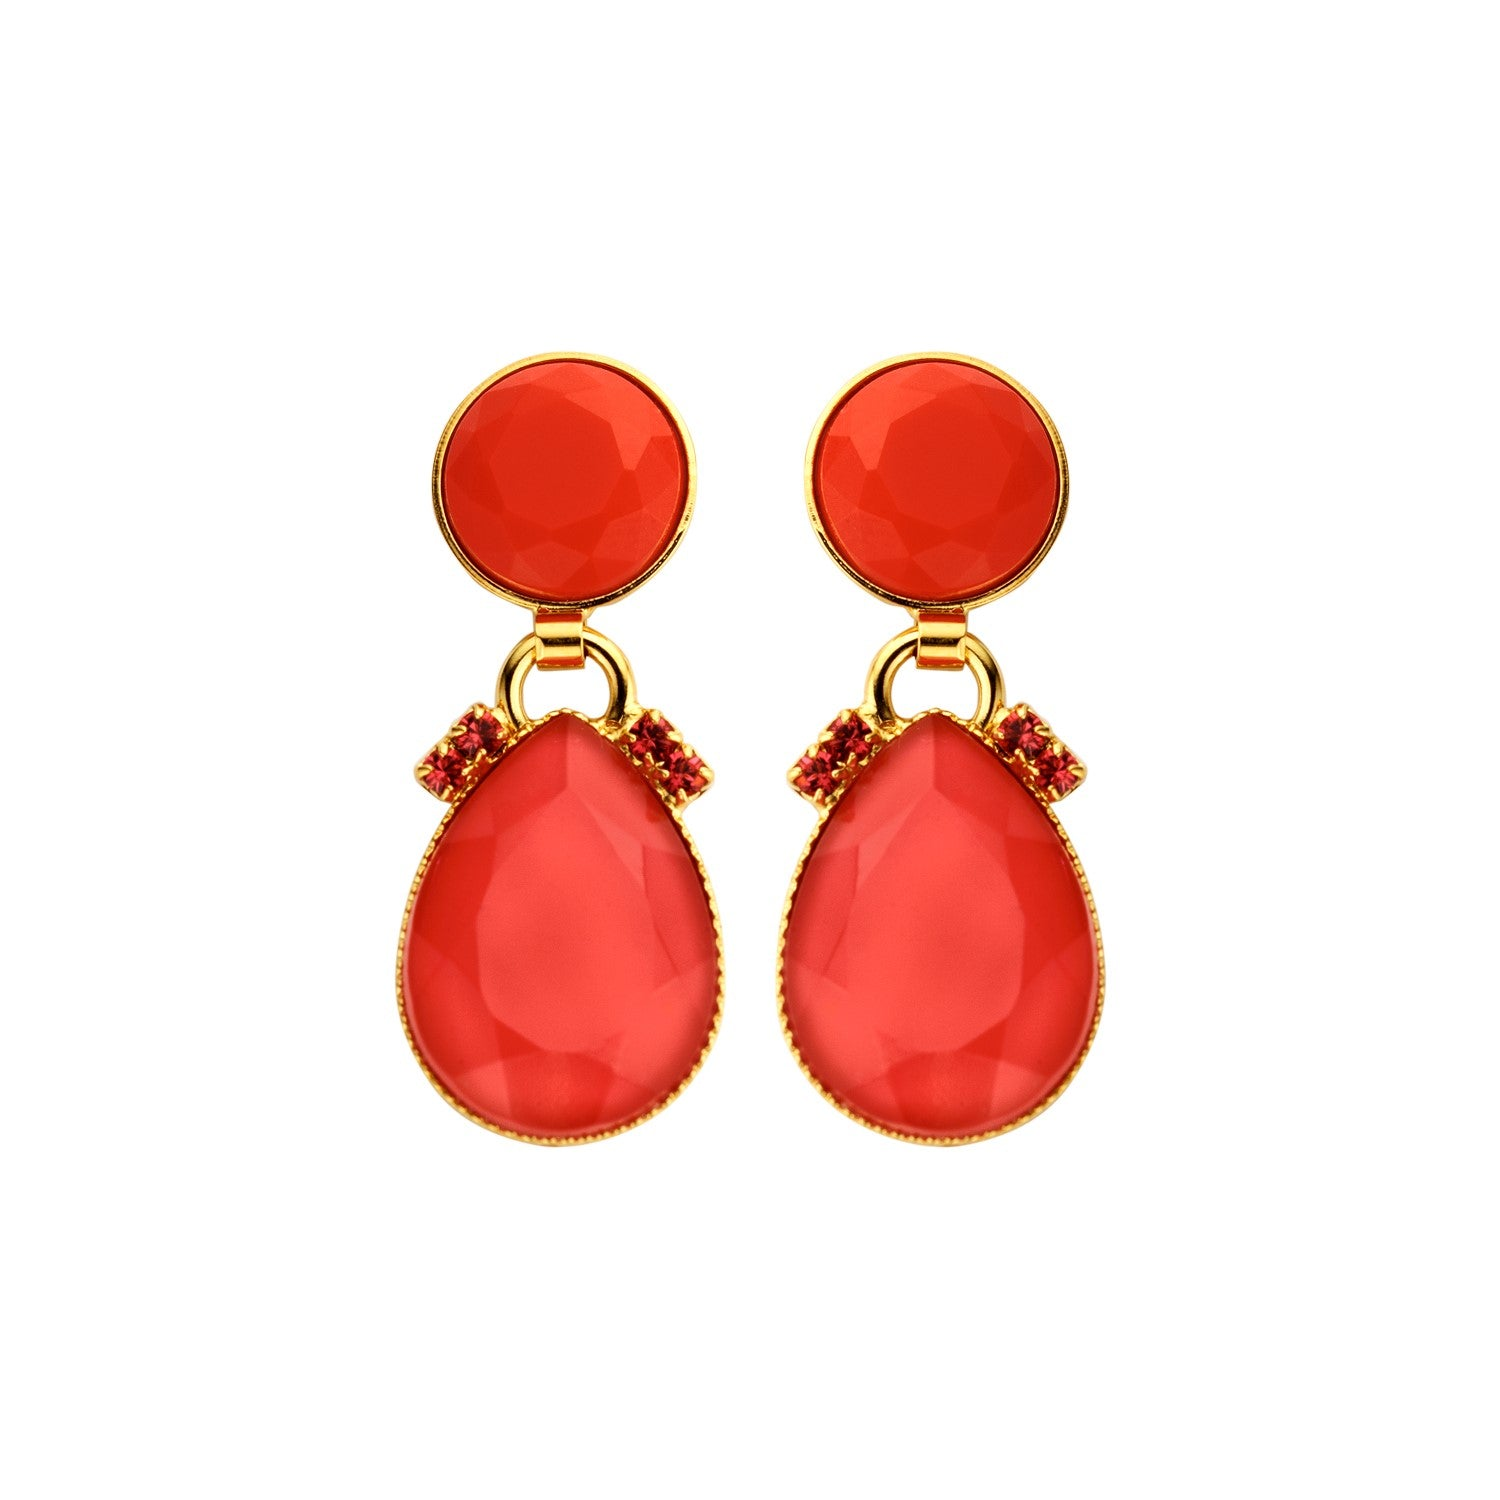 Mini 2drops red earrings - Souvenirs de Pomme